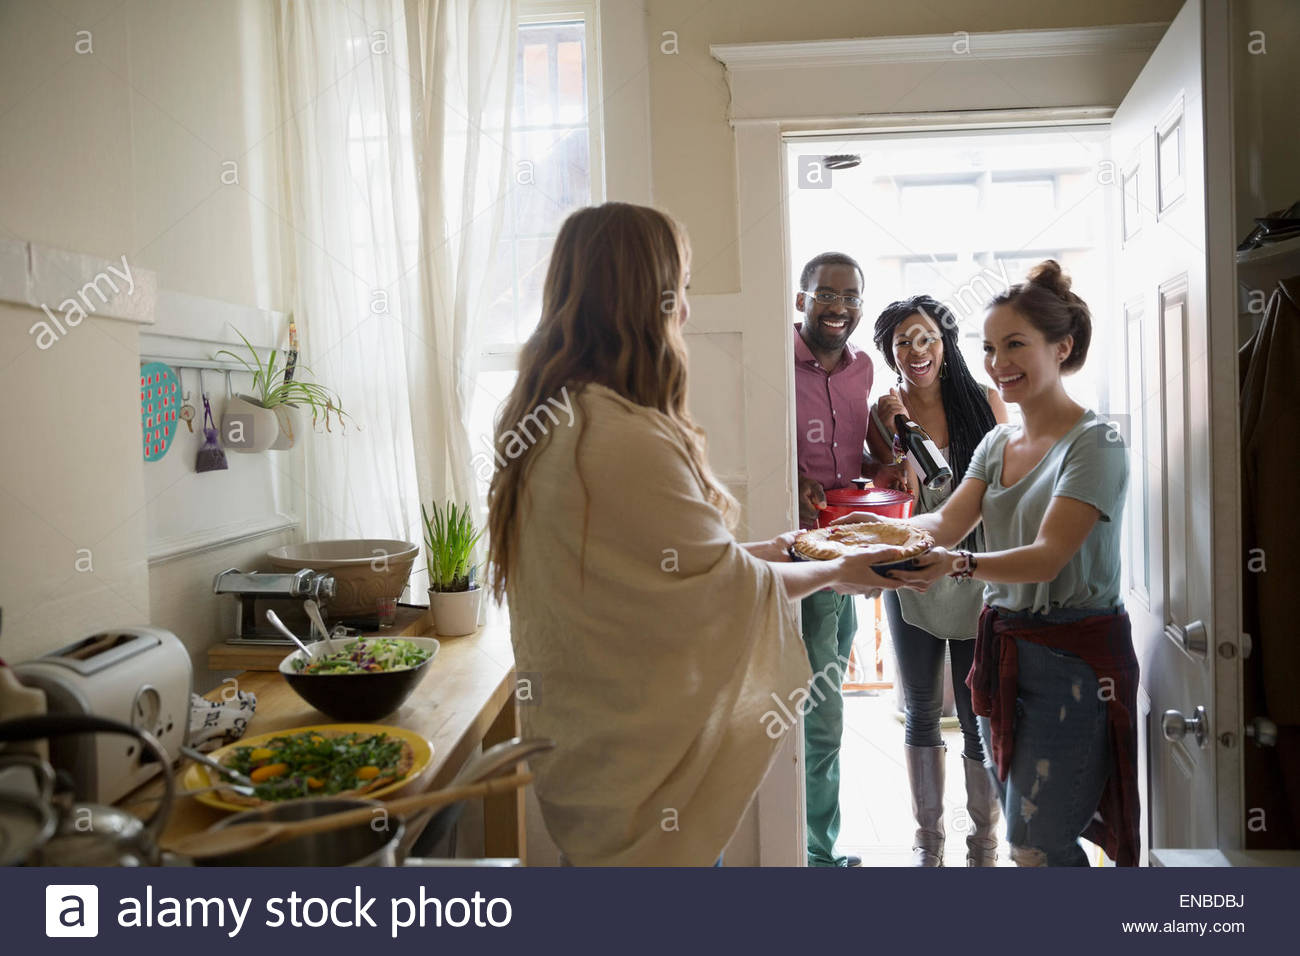 Woman greeting friends arriving for potluck dinner party - Stock Image